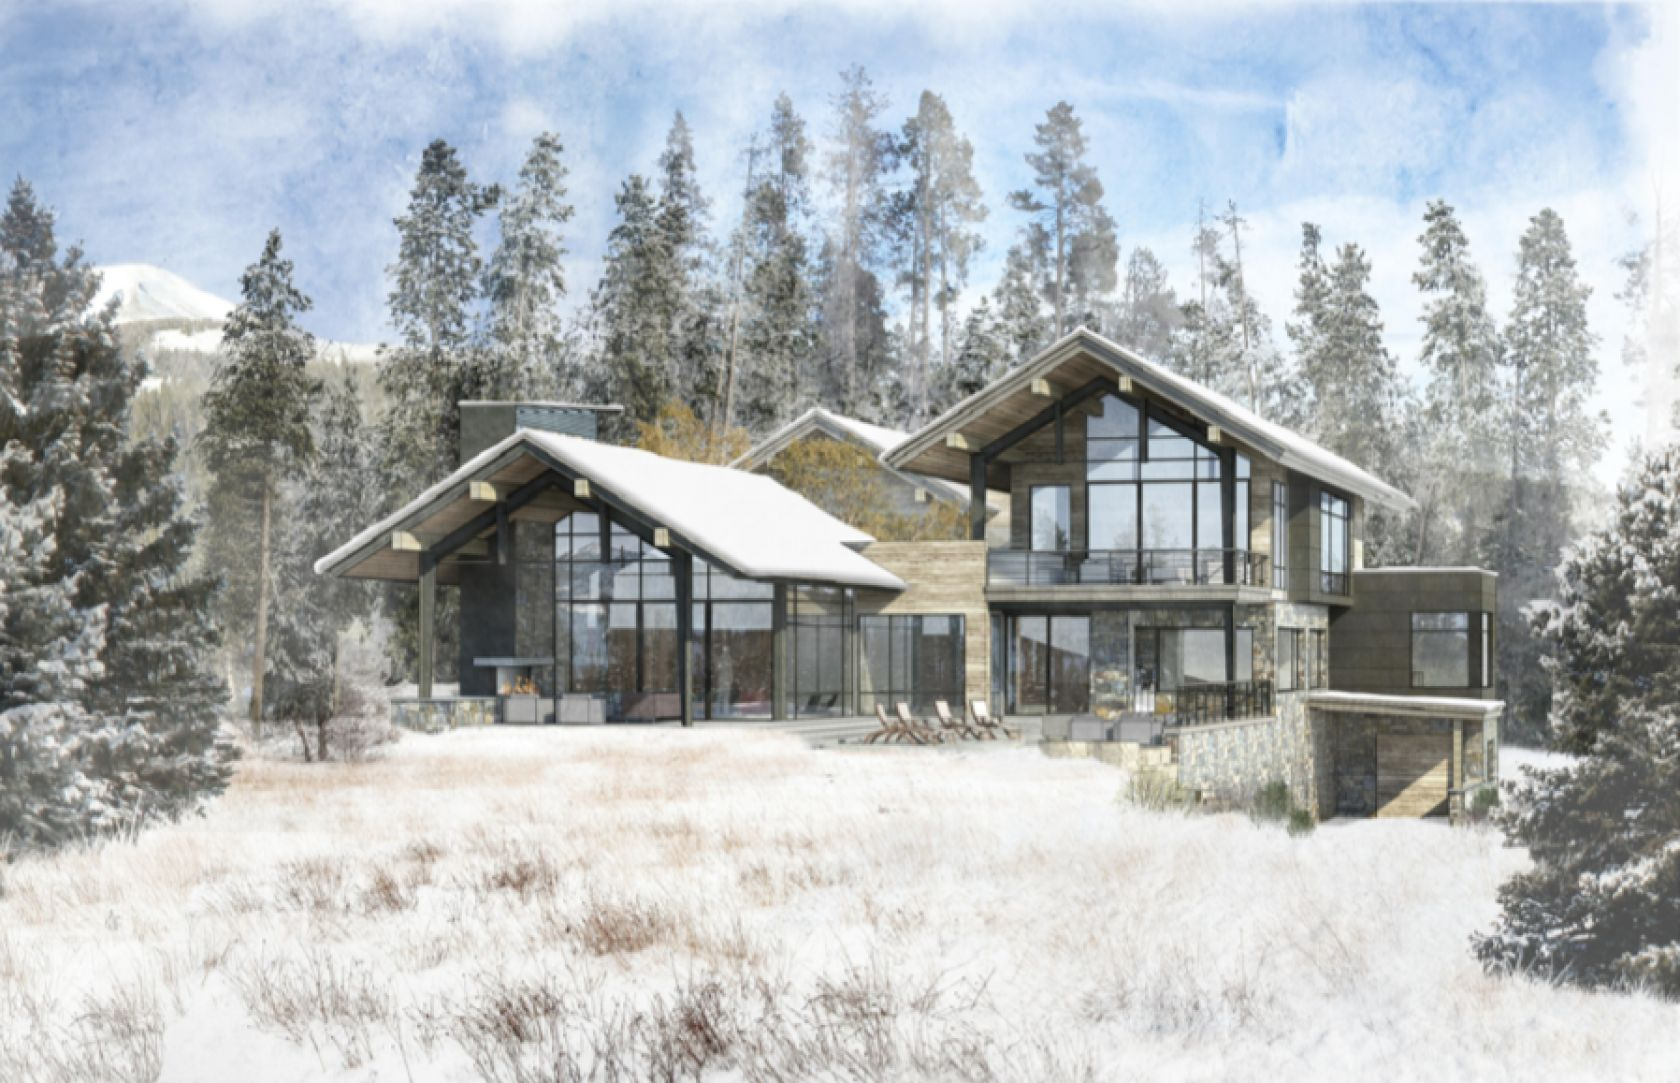 Get The Latest News On Yellowstone Club Montana Real Estate